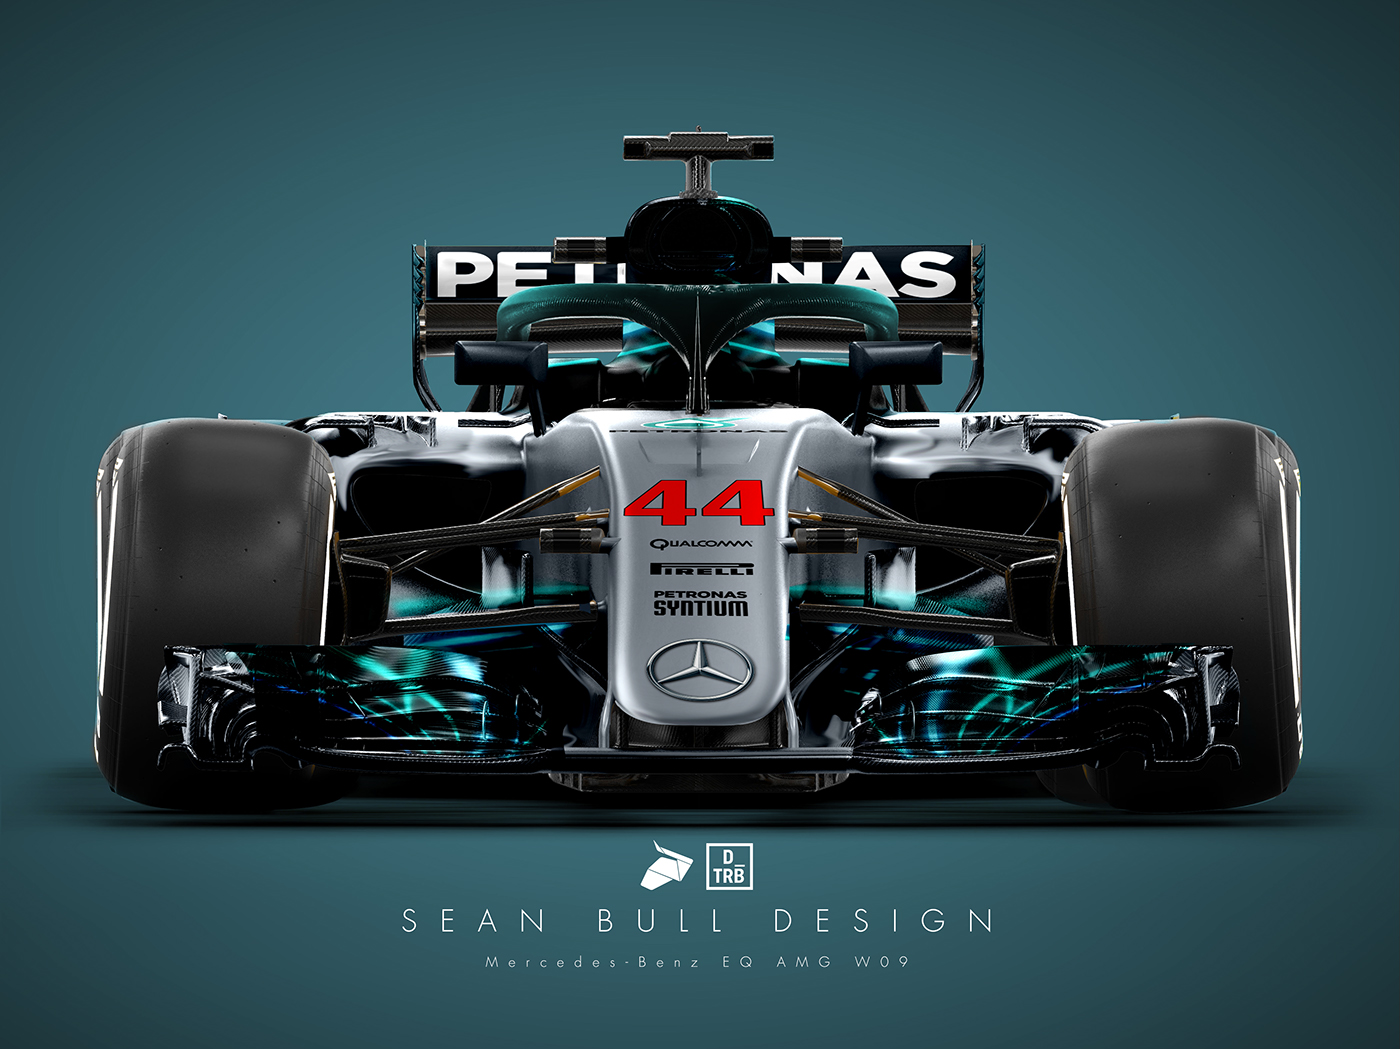 Mercedes Of Warwick >> Mercedes WO9 2018 Livery Concept: Drivetribe on Behance